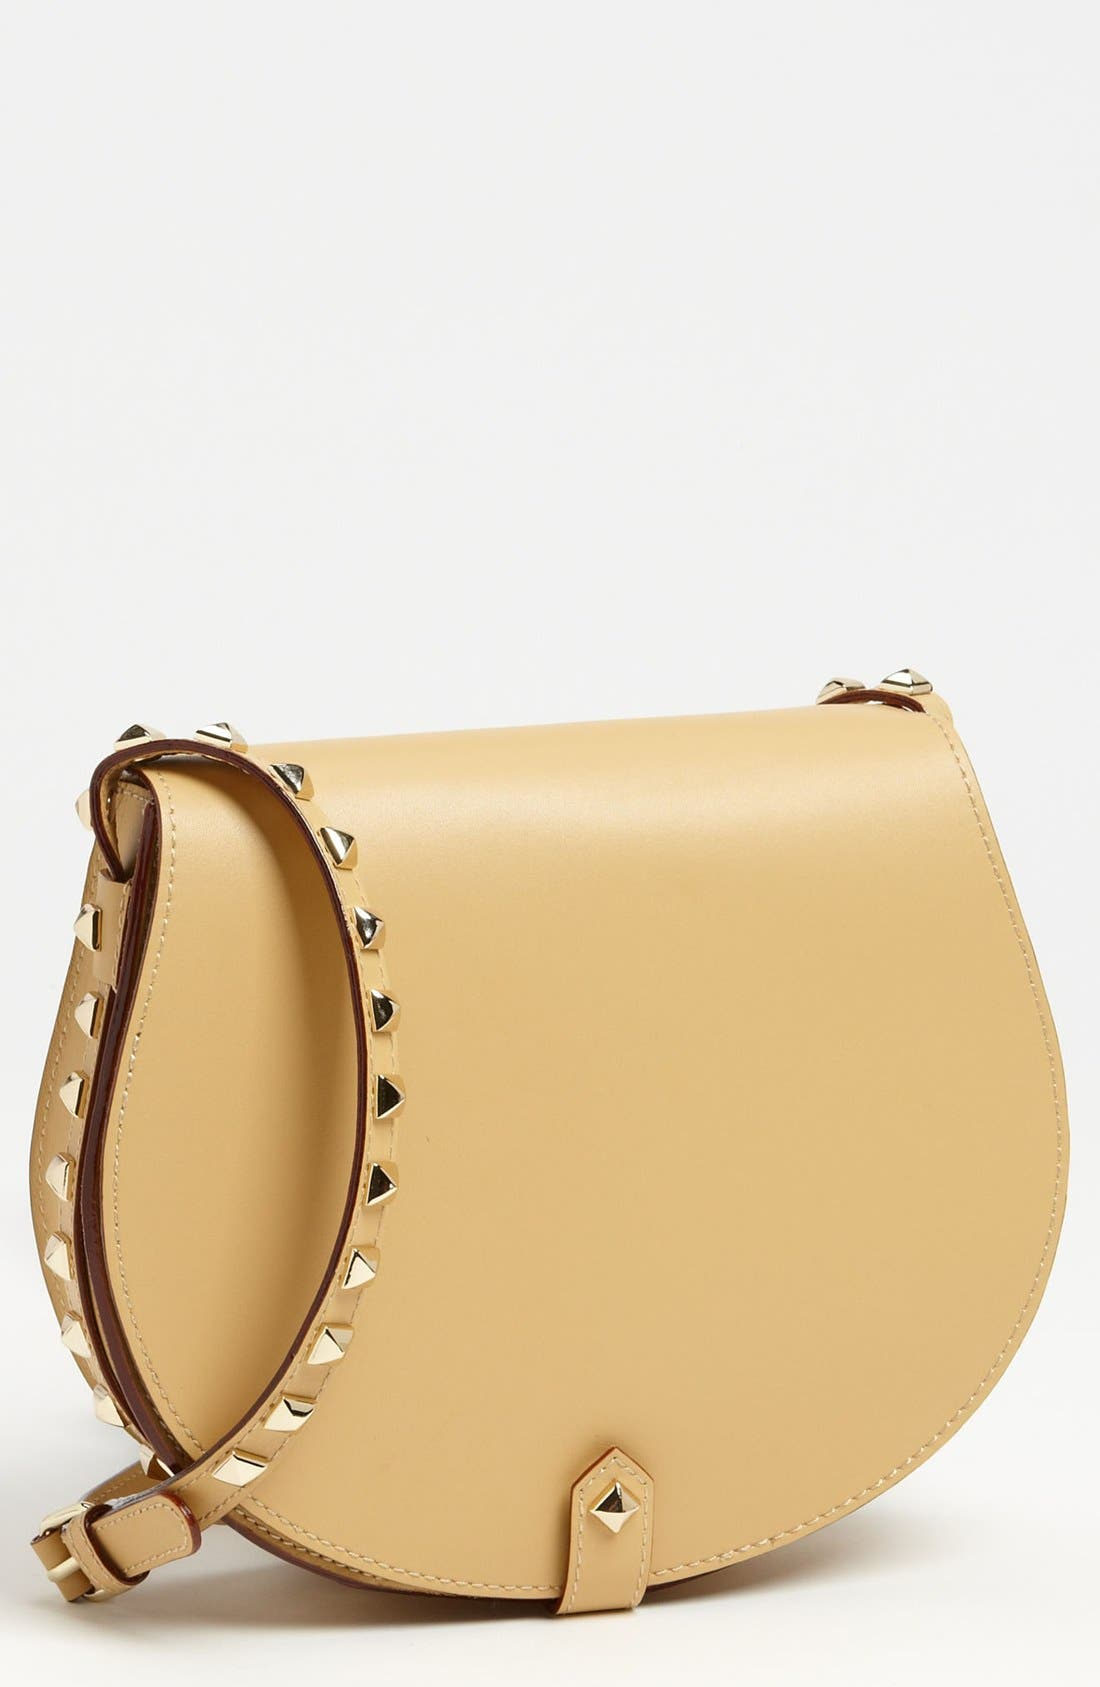 Main Image - Rebecca Minkoff 'Skylar' Studded Crossbody Bag